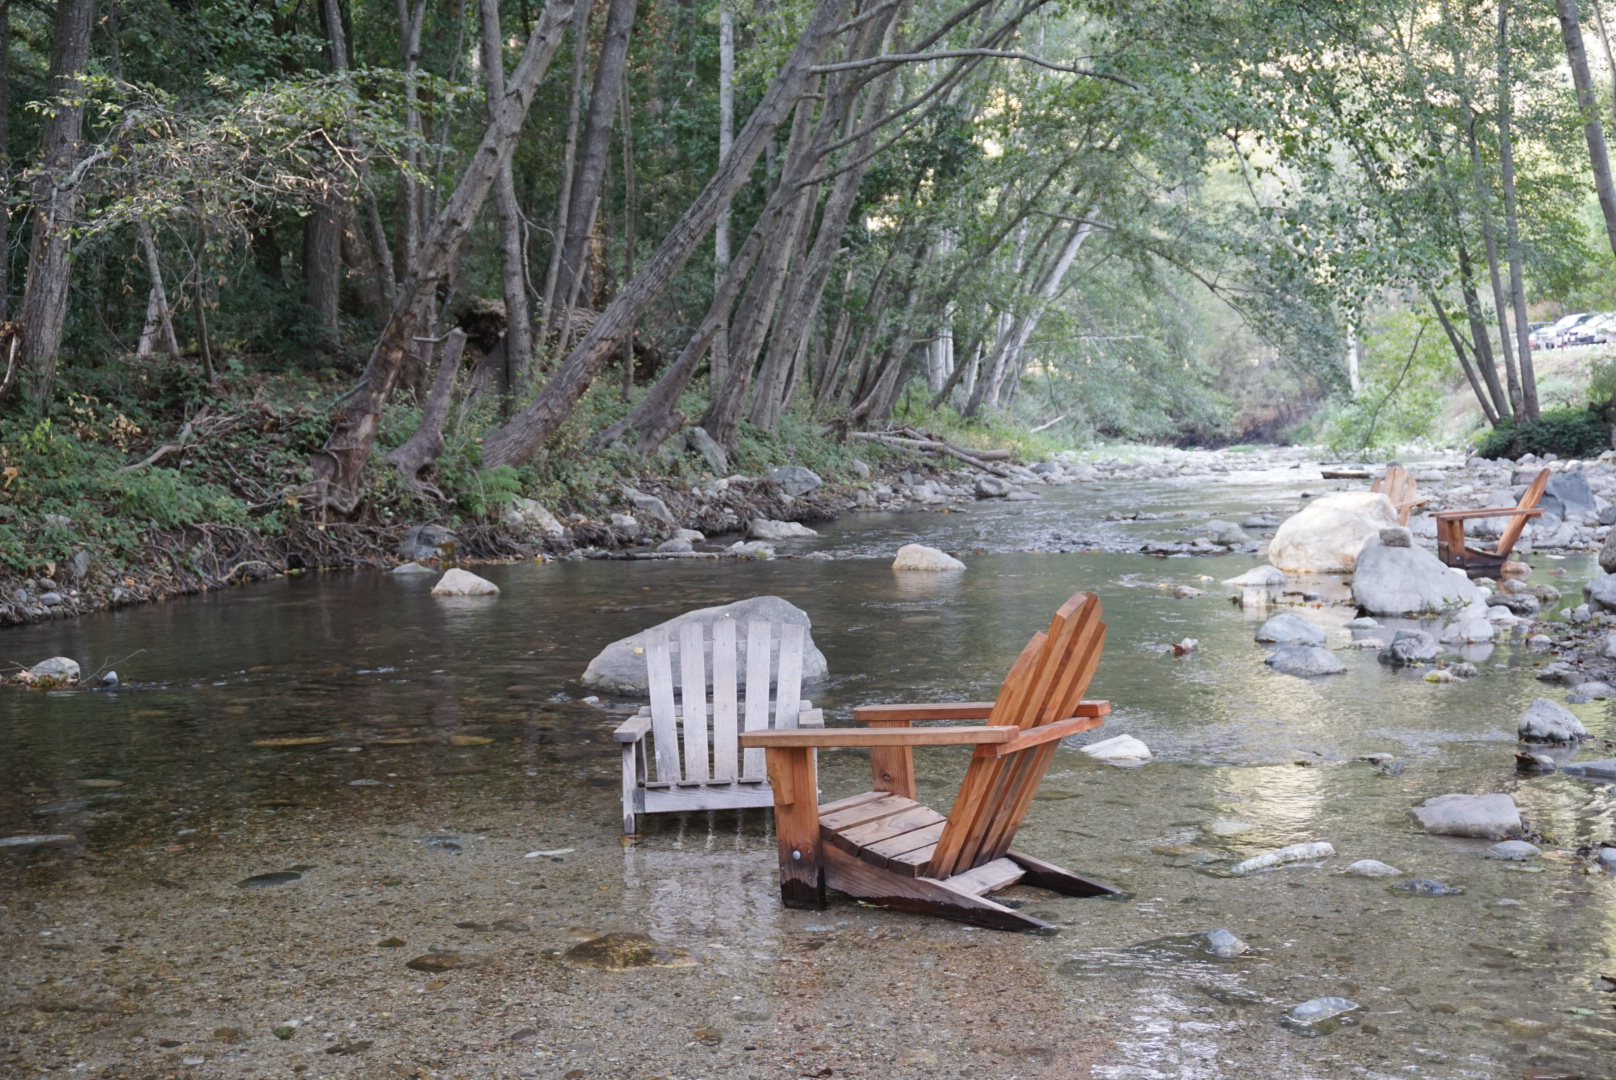 Relaxing in the creek at River Inn.